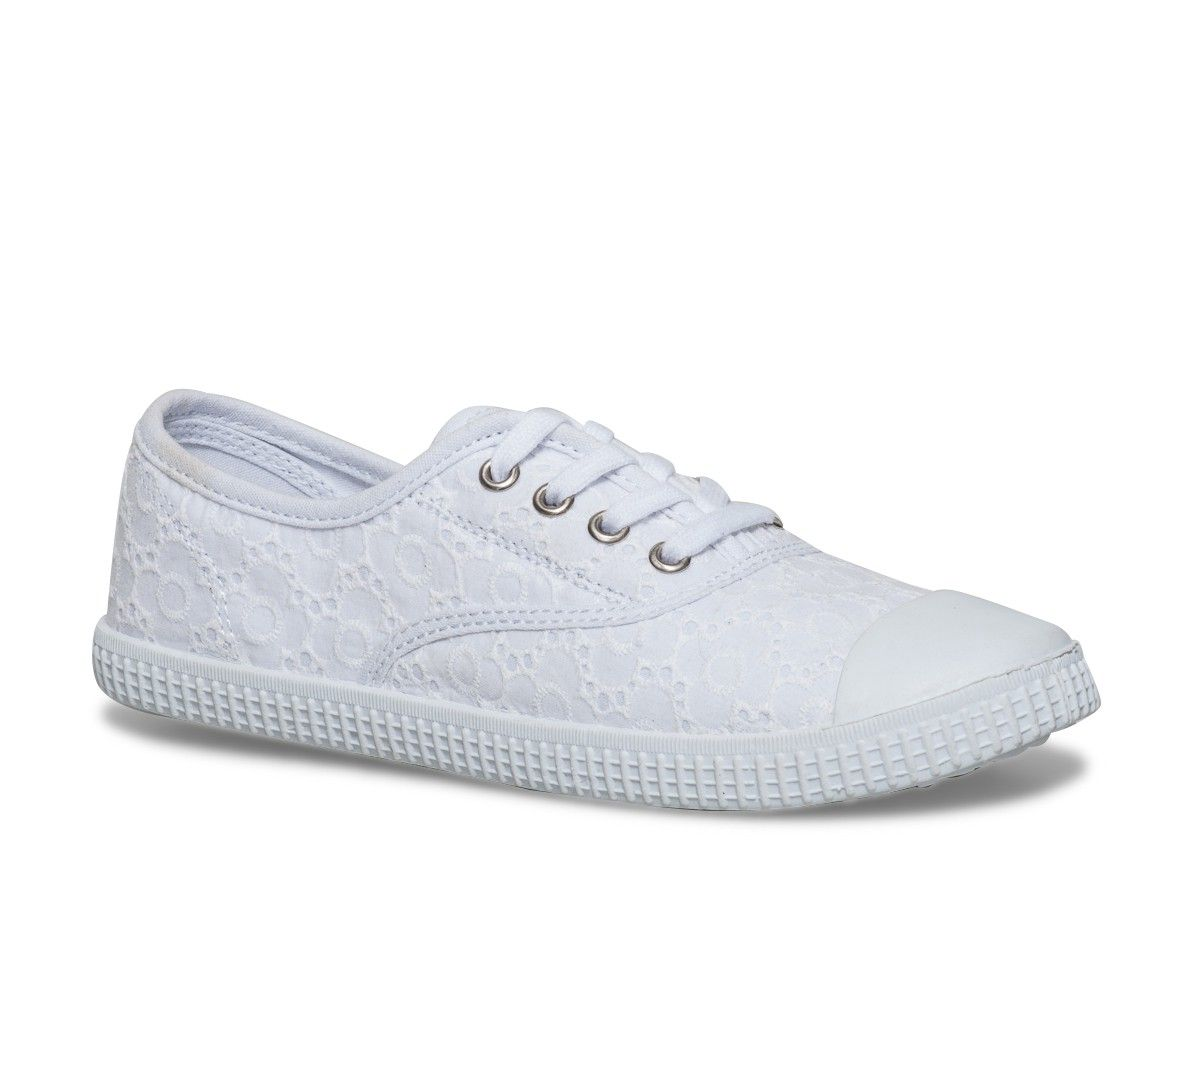 6988971202ad0 Tennis toile brodée blanche - Toiles / Tennis - Chaussures femme ...